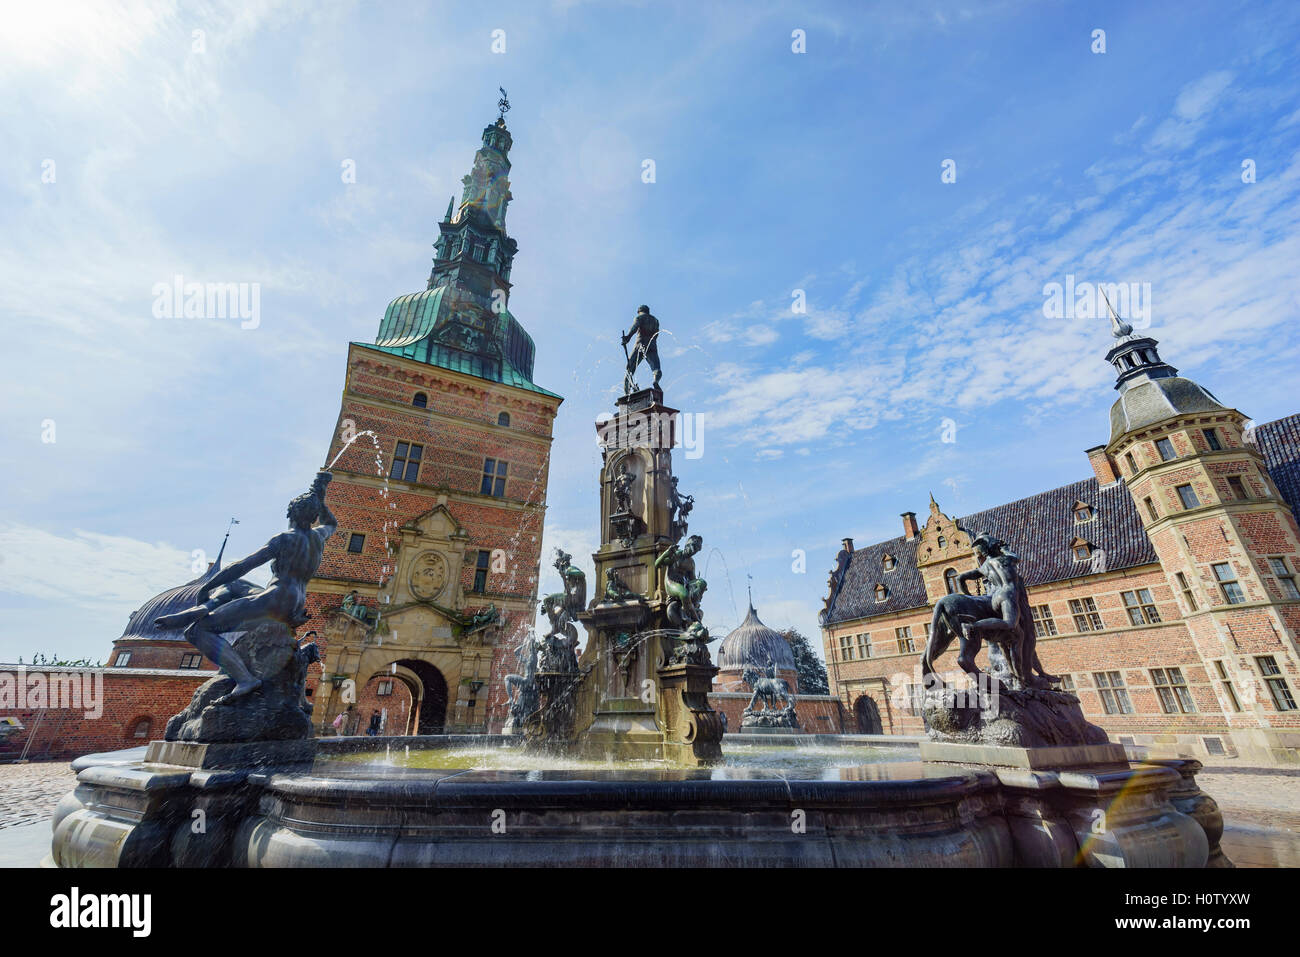 Traveling in the famous Frederiksborg Castle, Copenhagen at summer - Stock Image